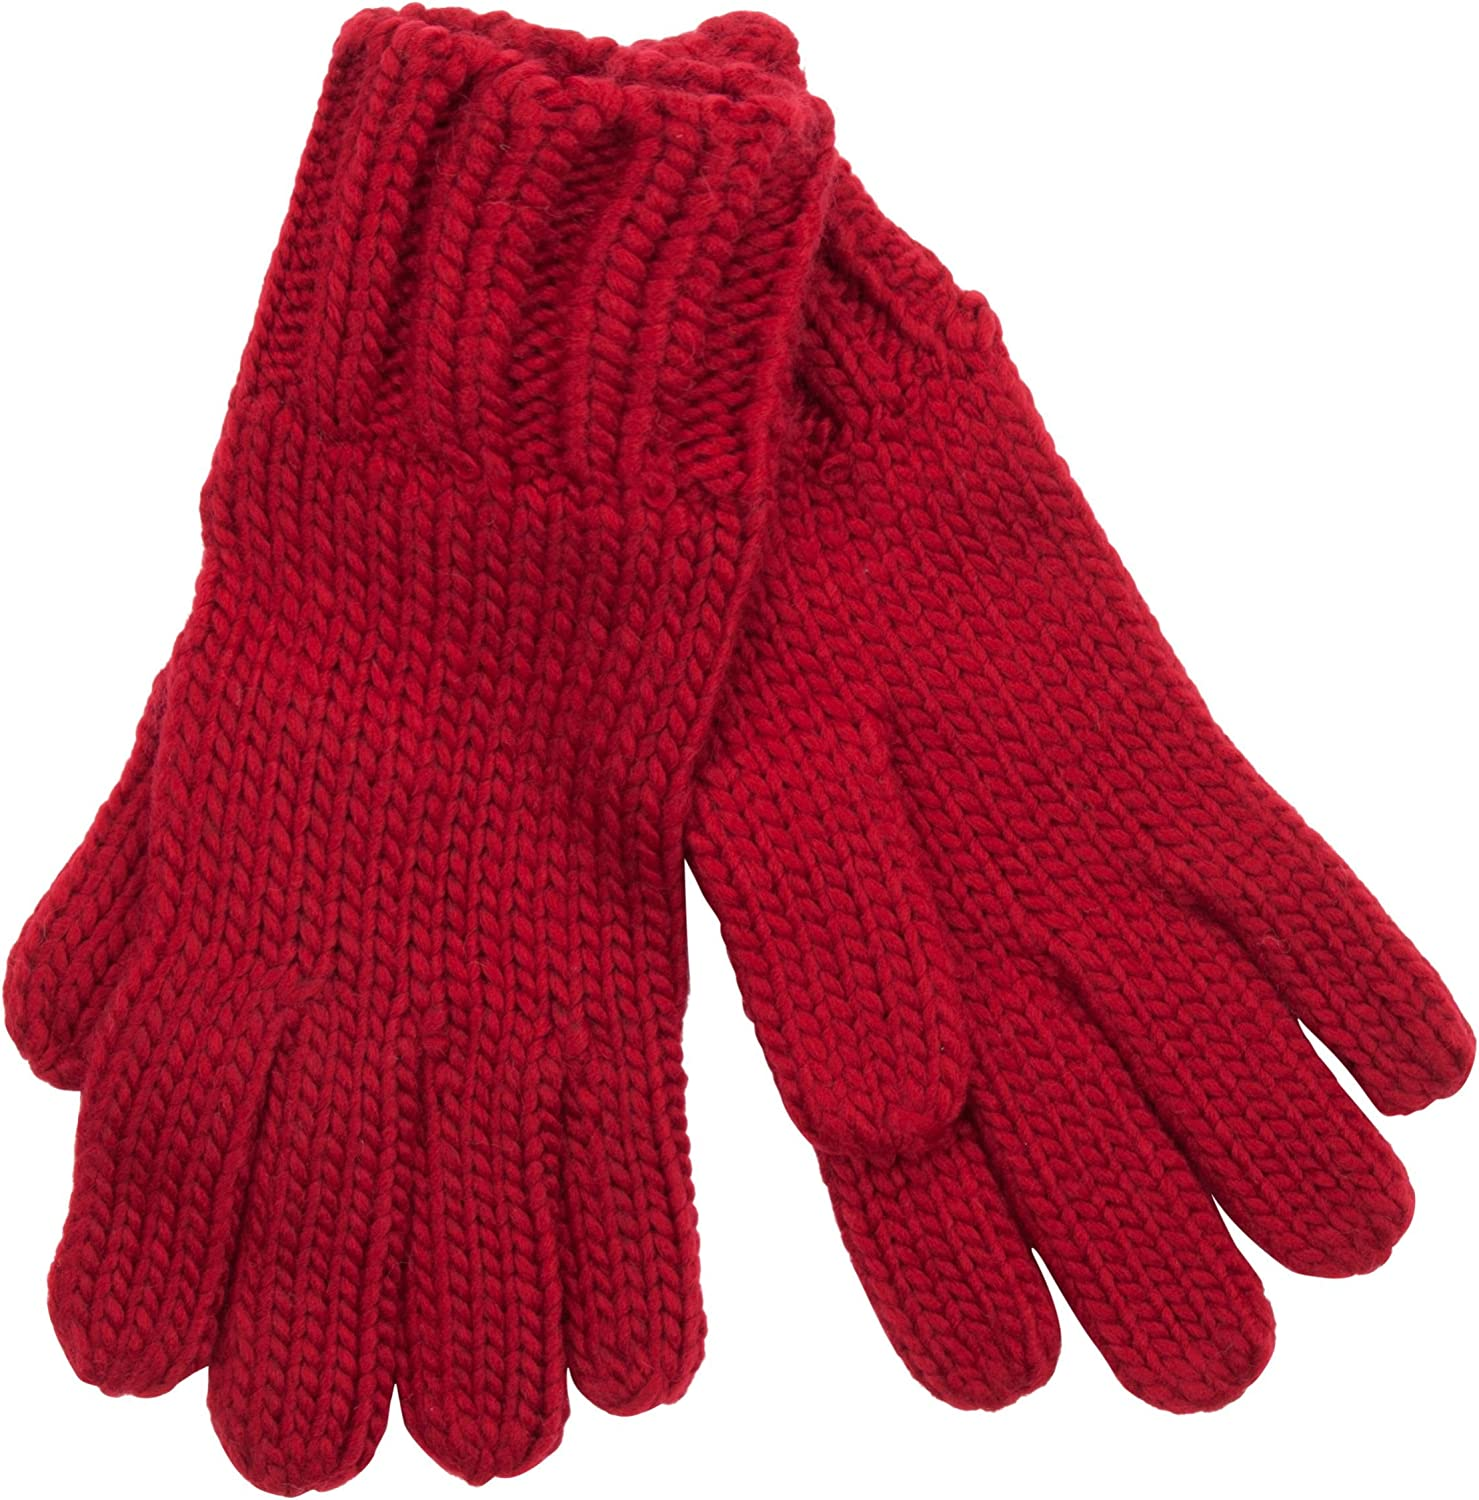 Isaac Mizrahi Women's Twisted Cable Knit Gloves with Rib Trim